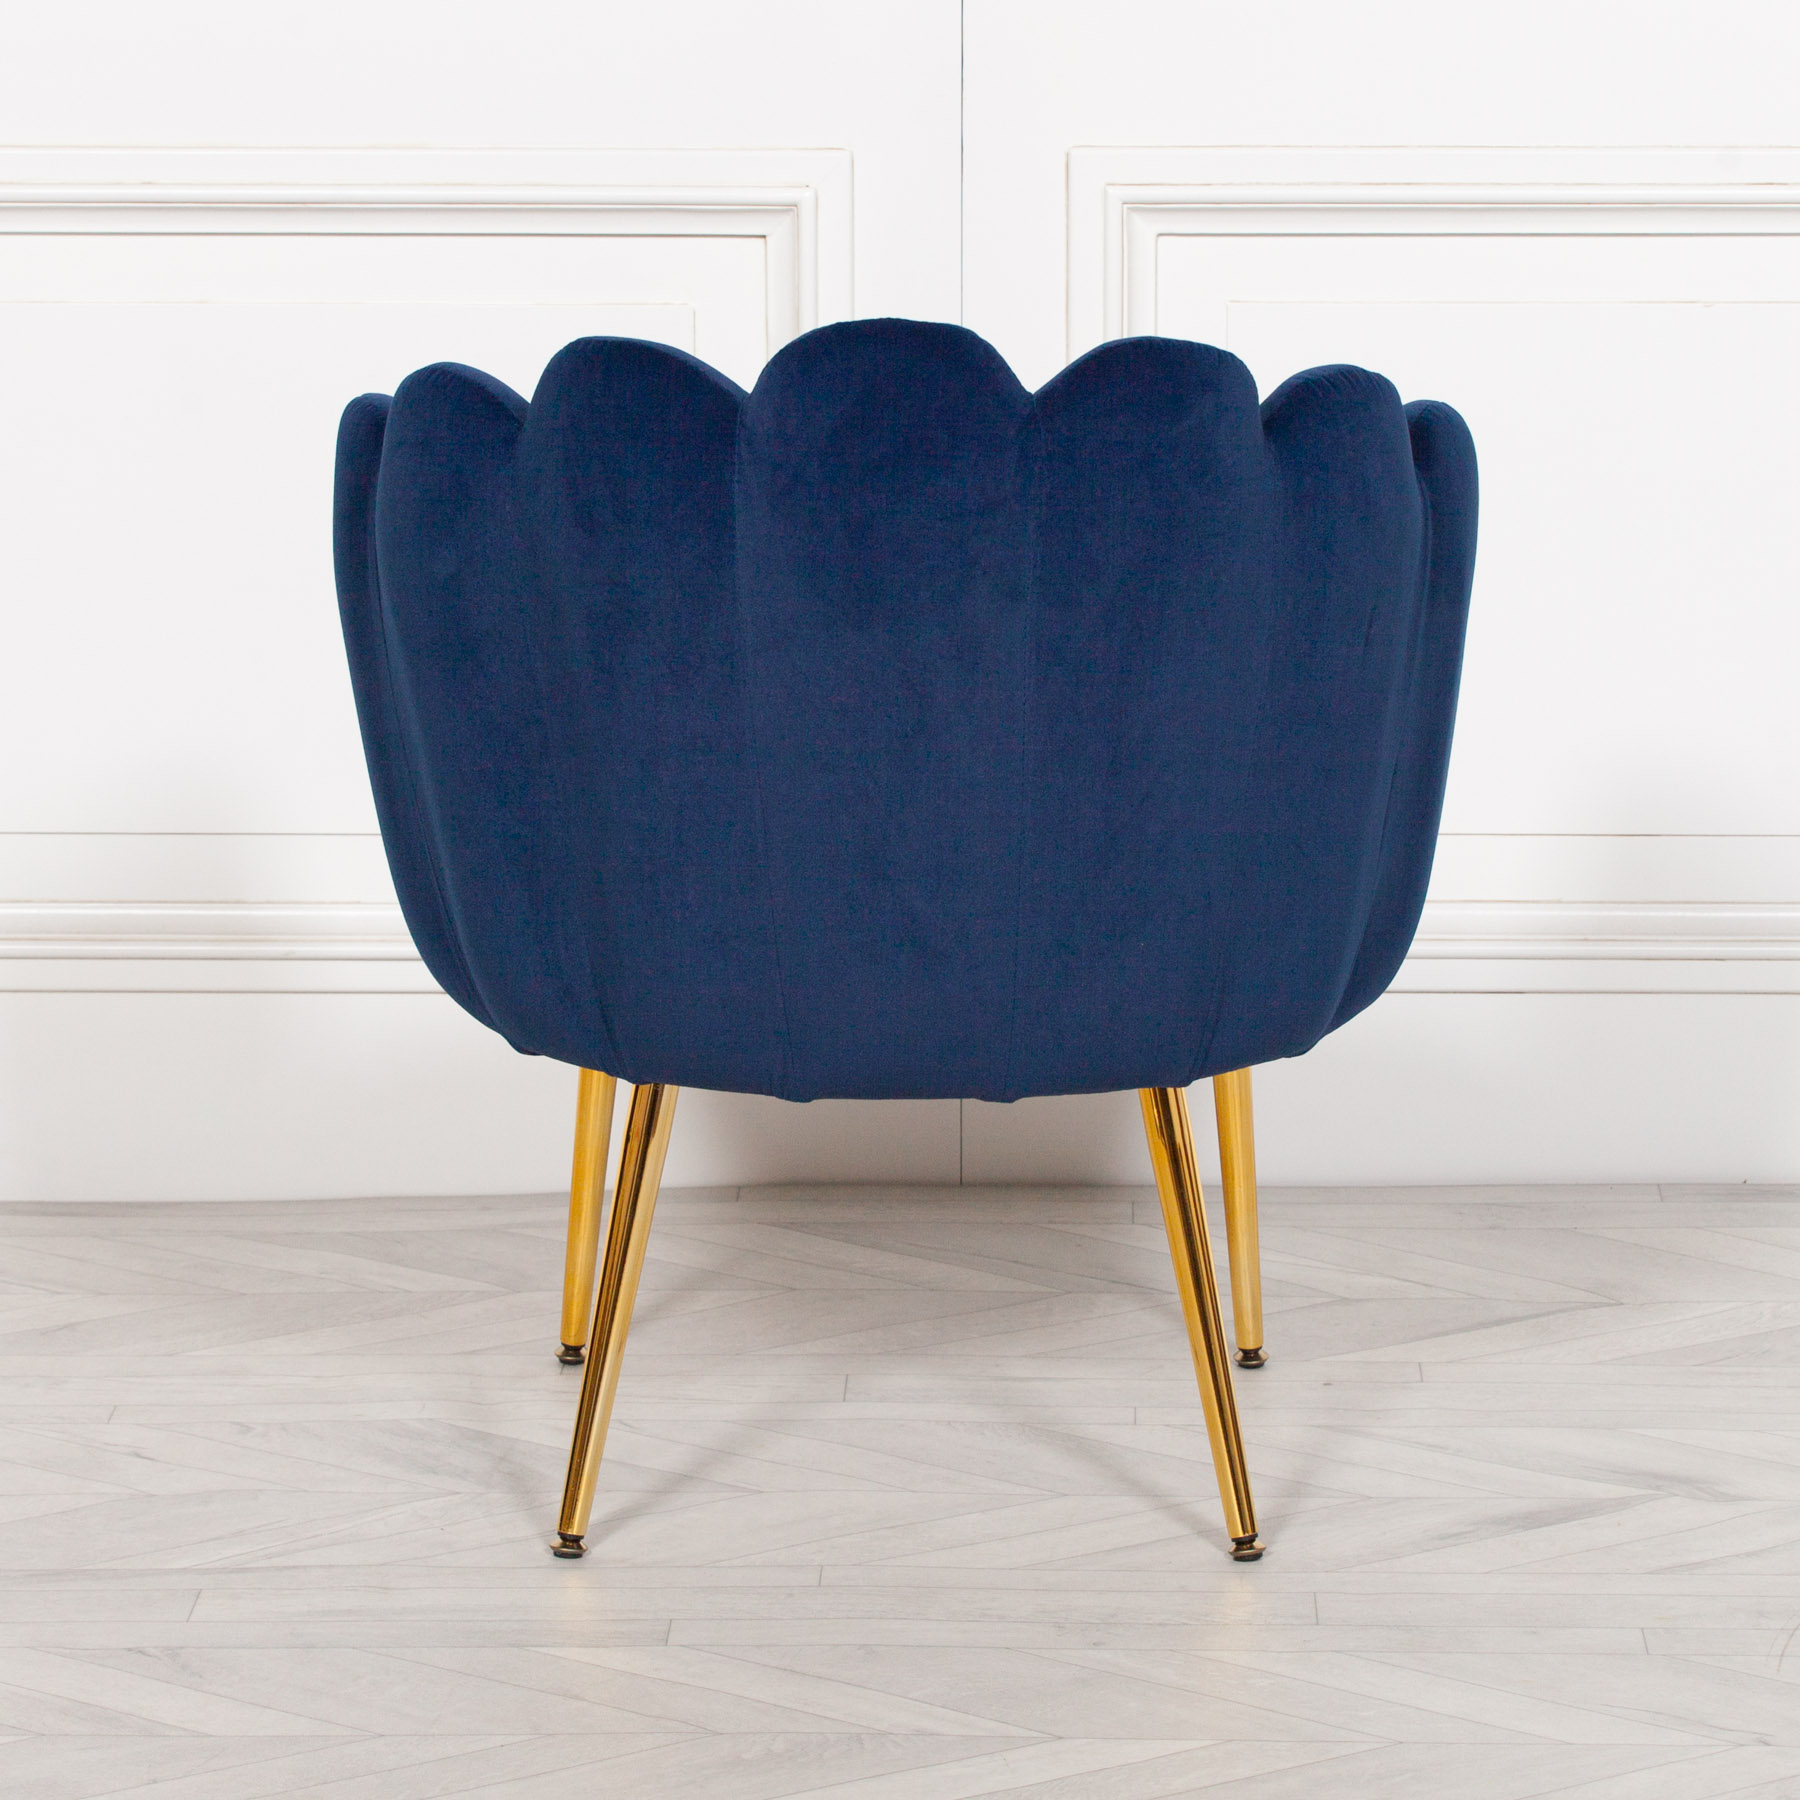 Picture of: Aurora Art Deco Navy Blue Velvet Scalloped Occasional Chair Gold Legs Shell Armchair Furniture La Maison Chic Luxury Interiors